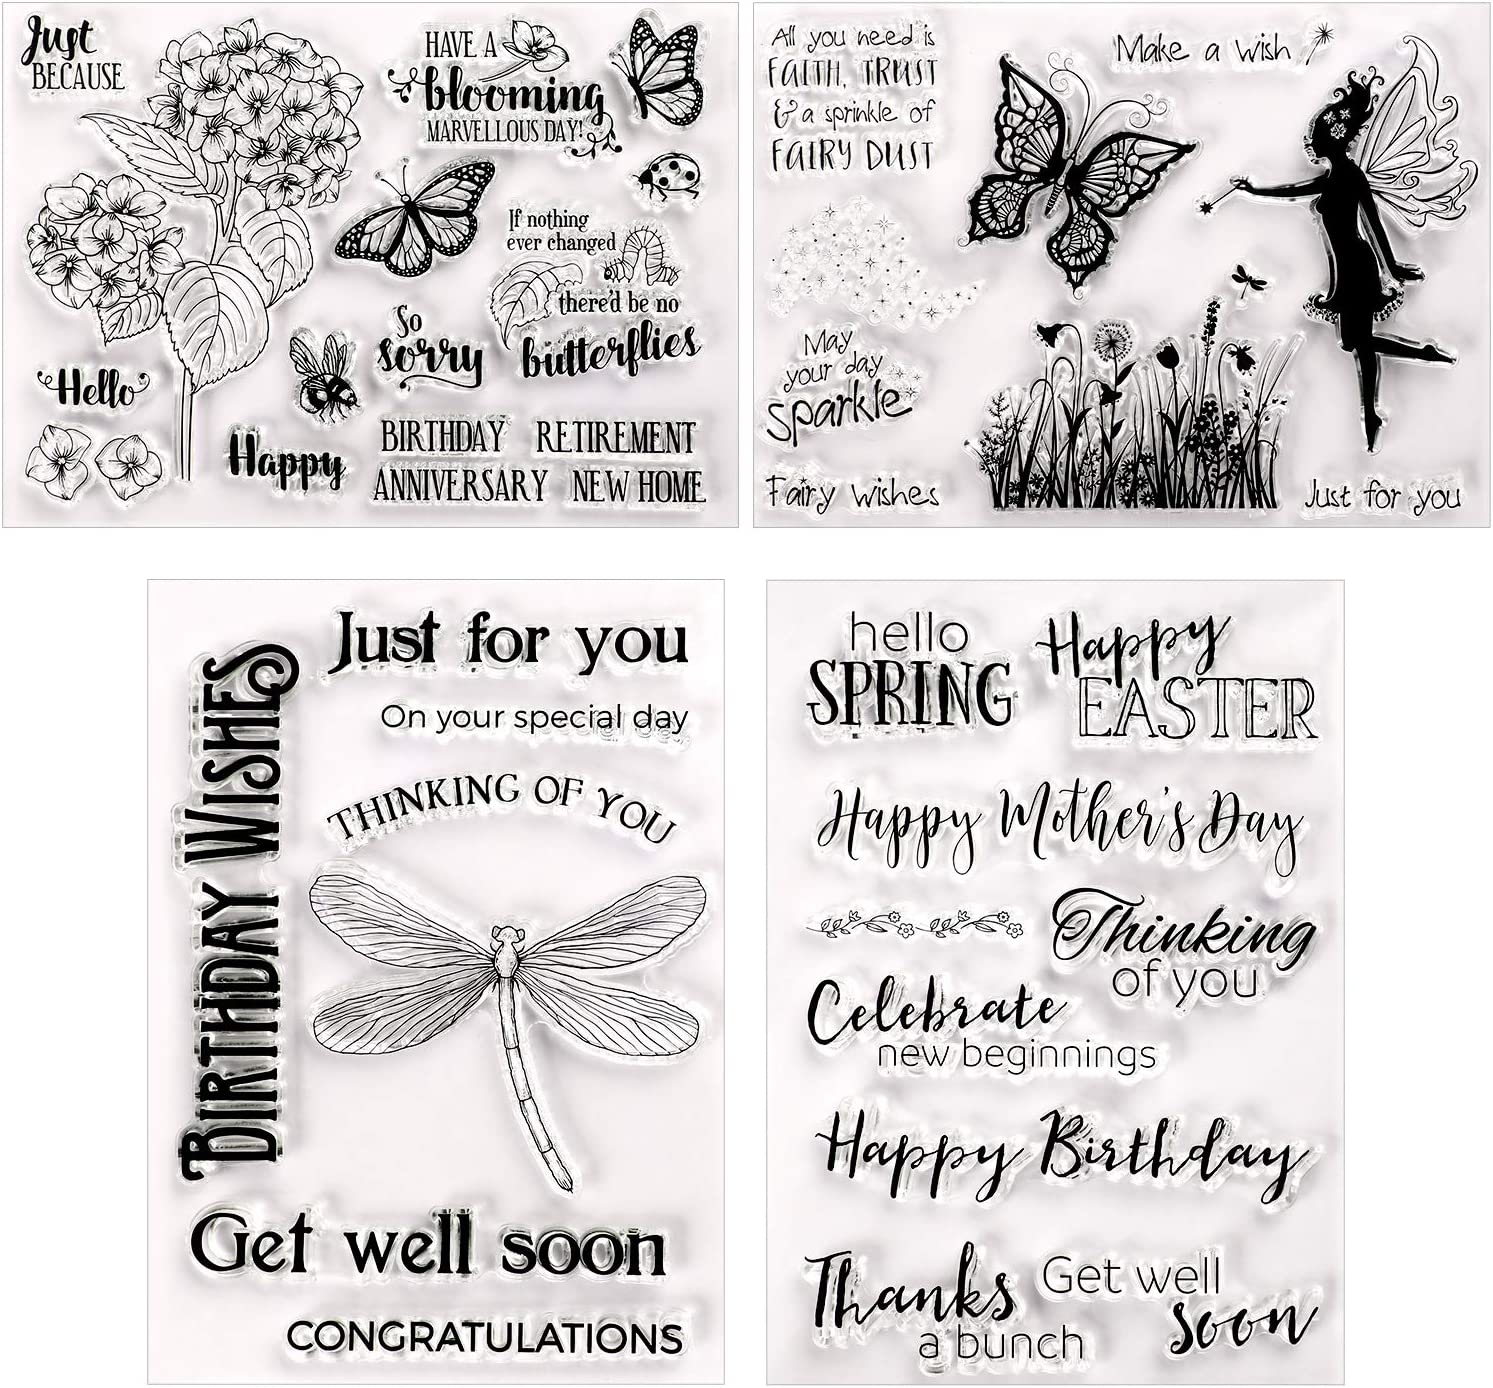 Outus 4 Pieces Clear Stamps Silicone Stamp Cards with Flower, Butterfly, Dragonfly, Greeting Words Pattern for Card Making Decoration and DIY Scrapbooking Embossing Album Decor Craft